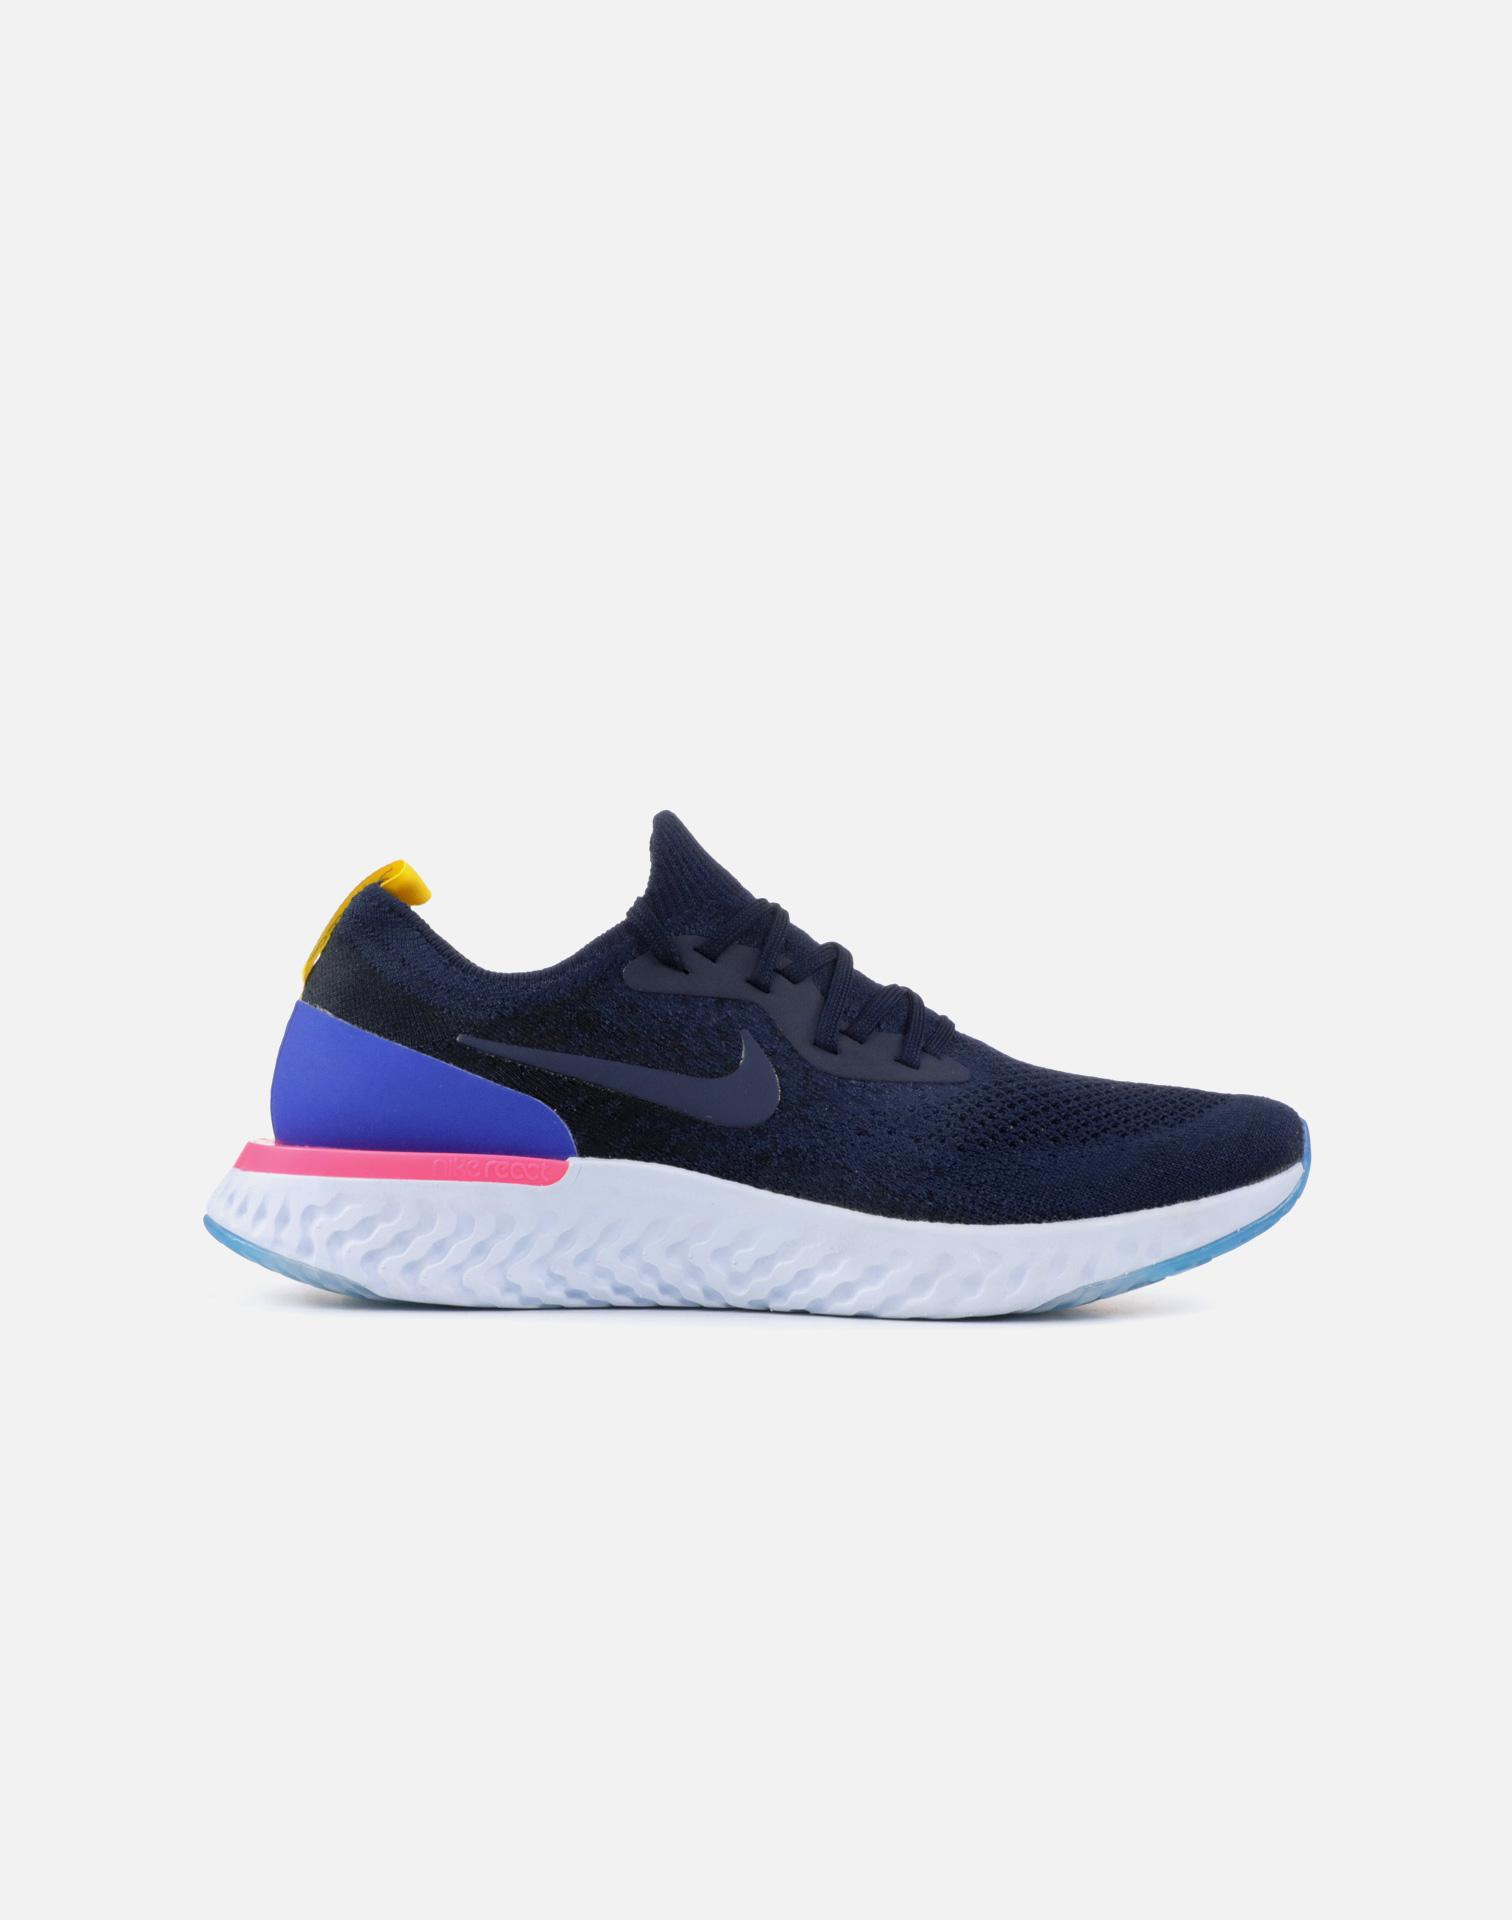 6362a823bc7f6 Lyst - Nike Wmns Epic React Flyknit in Blue